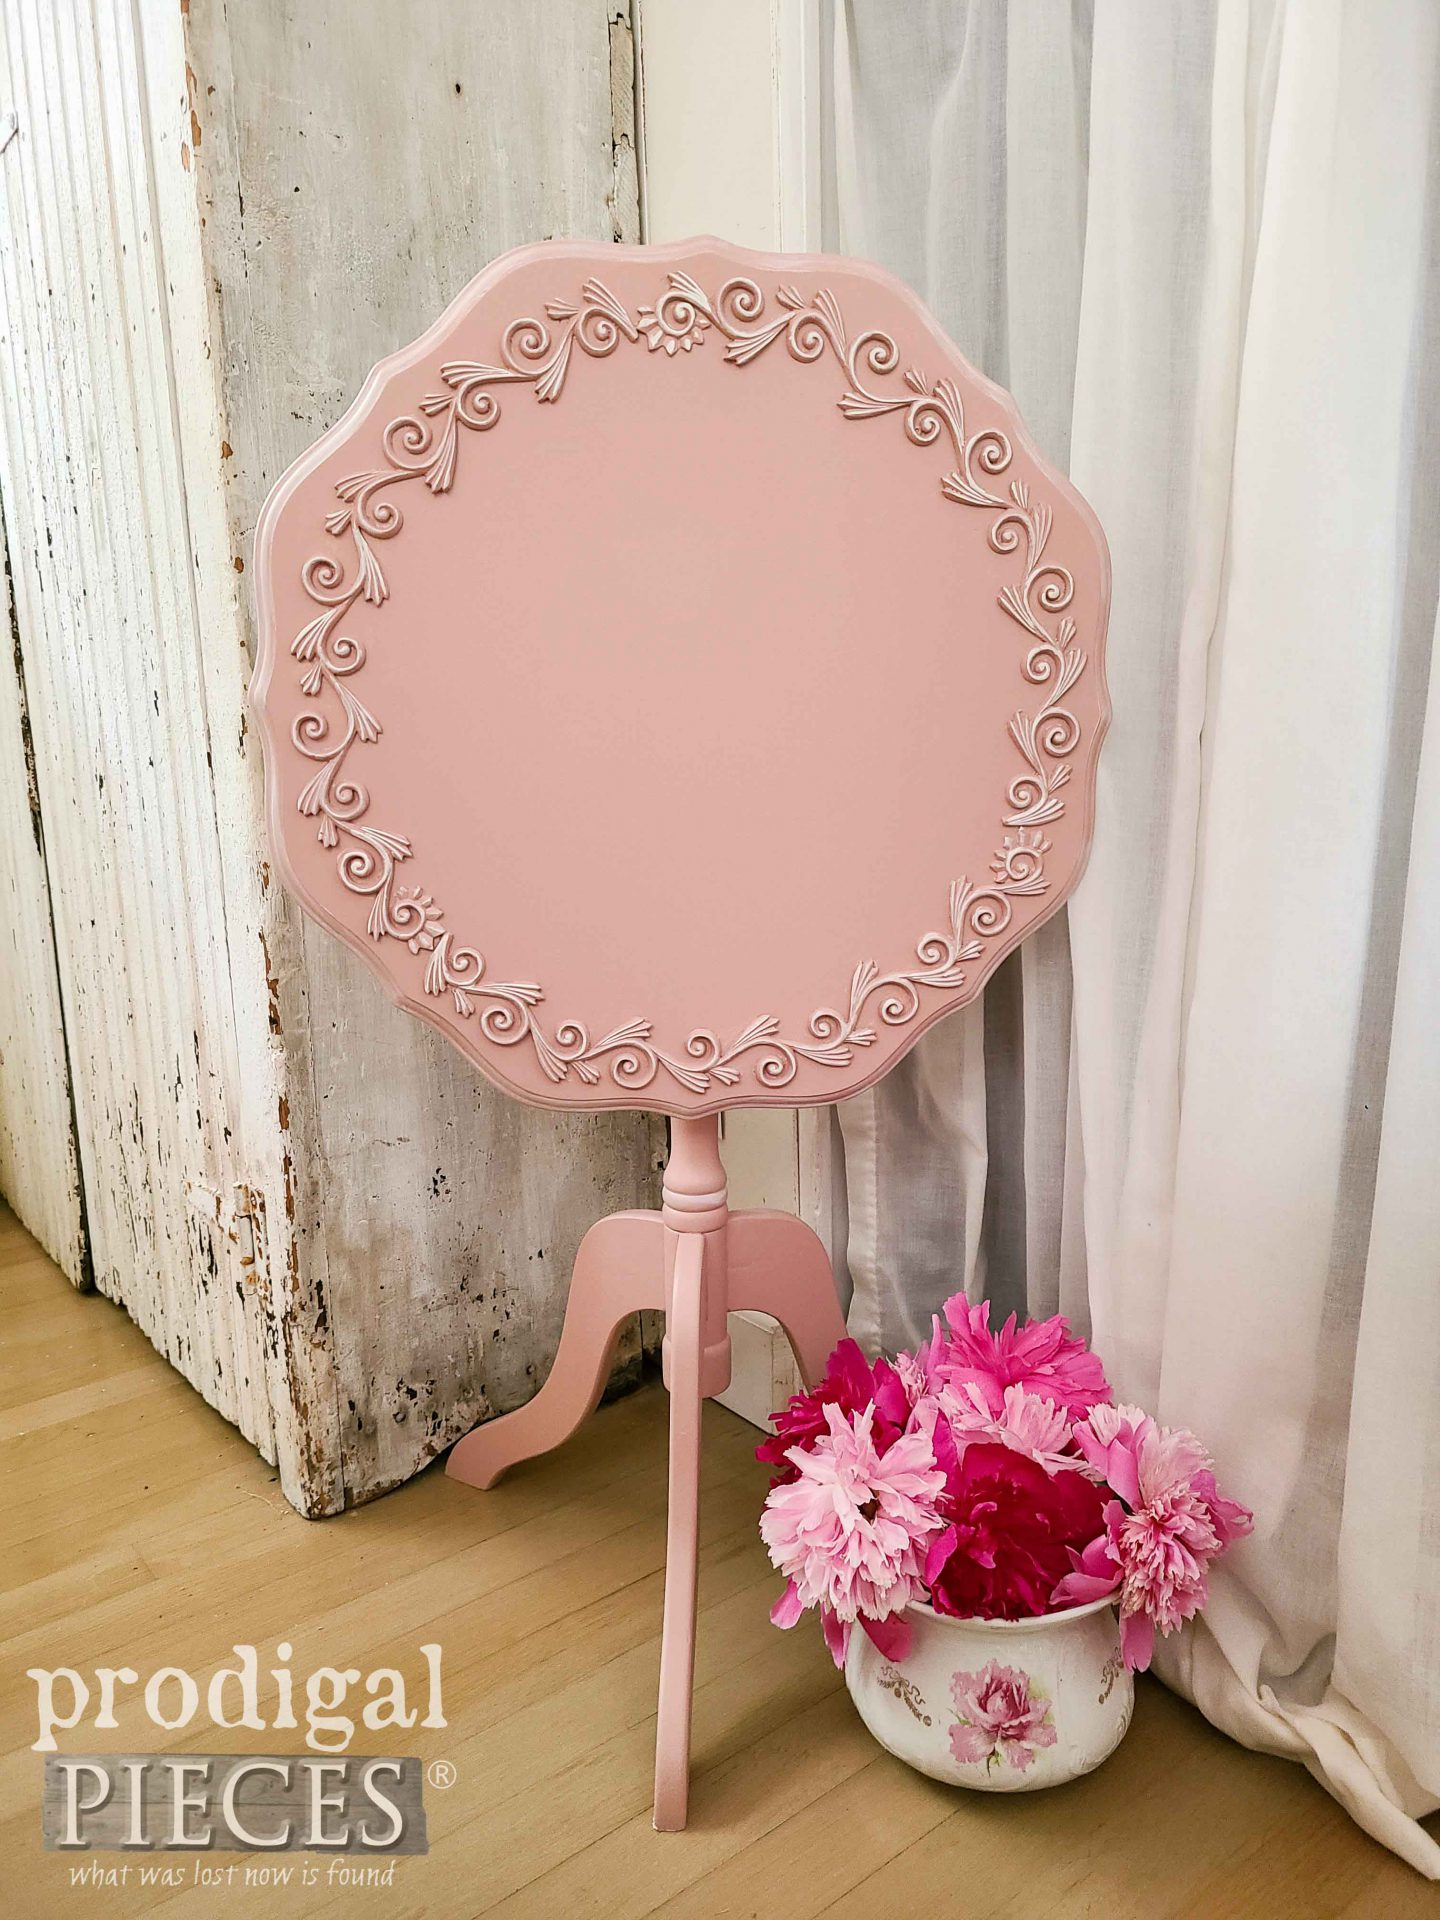 Tipped Tilt Top Table in Pink by Larissa of Prodigal Pieces | prodigalpieces.com #prodigalpieces #home #shabbychic #homedecor